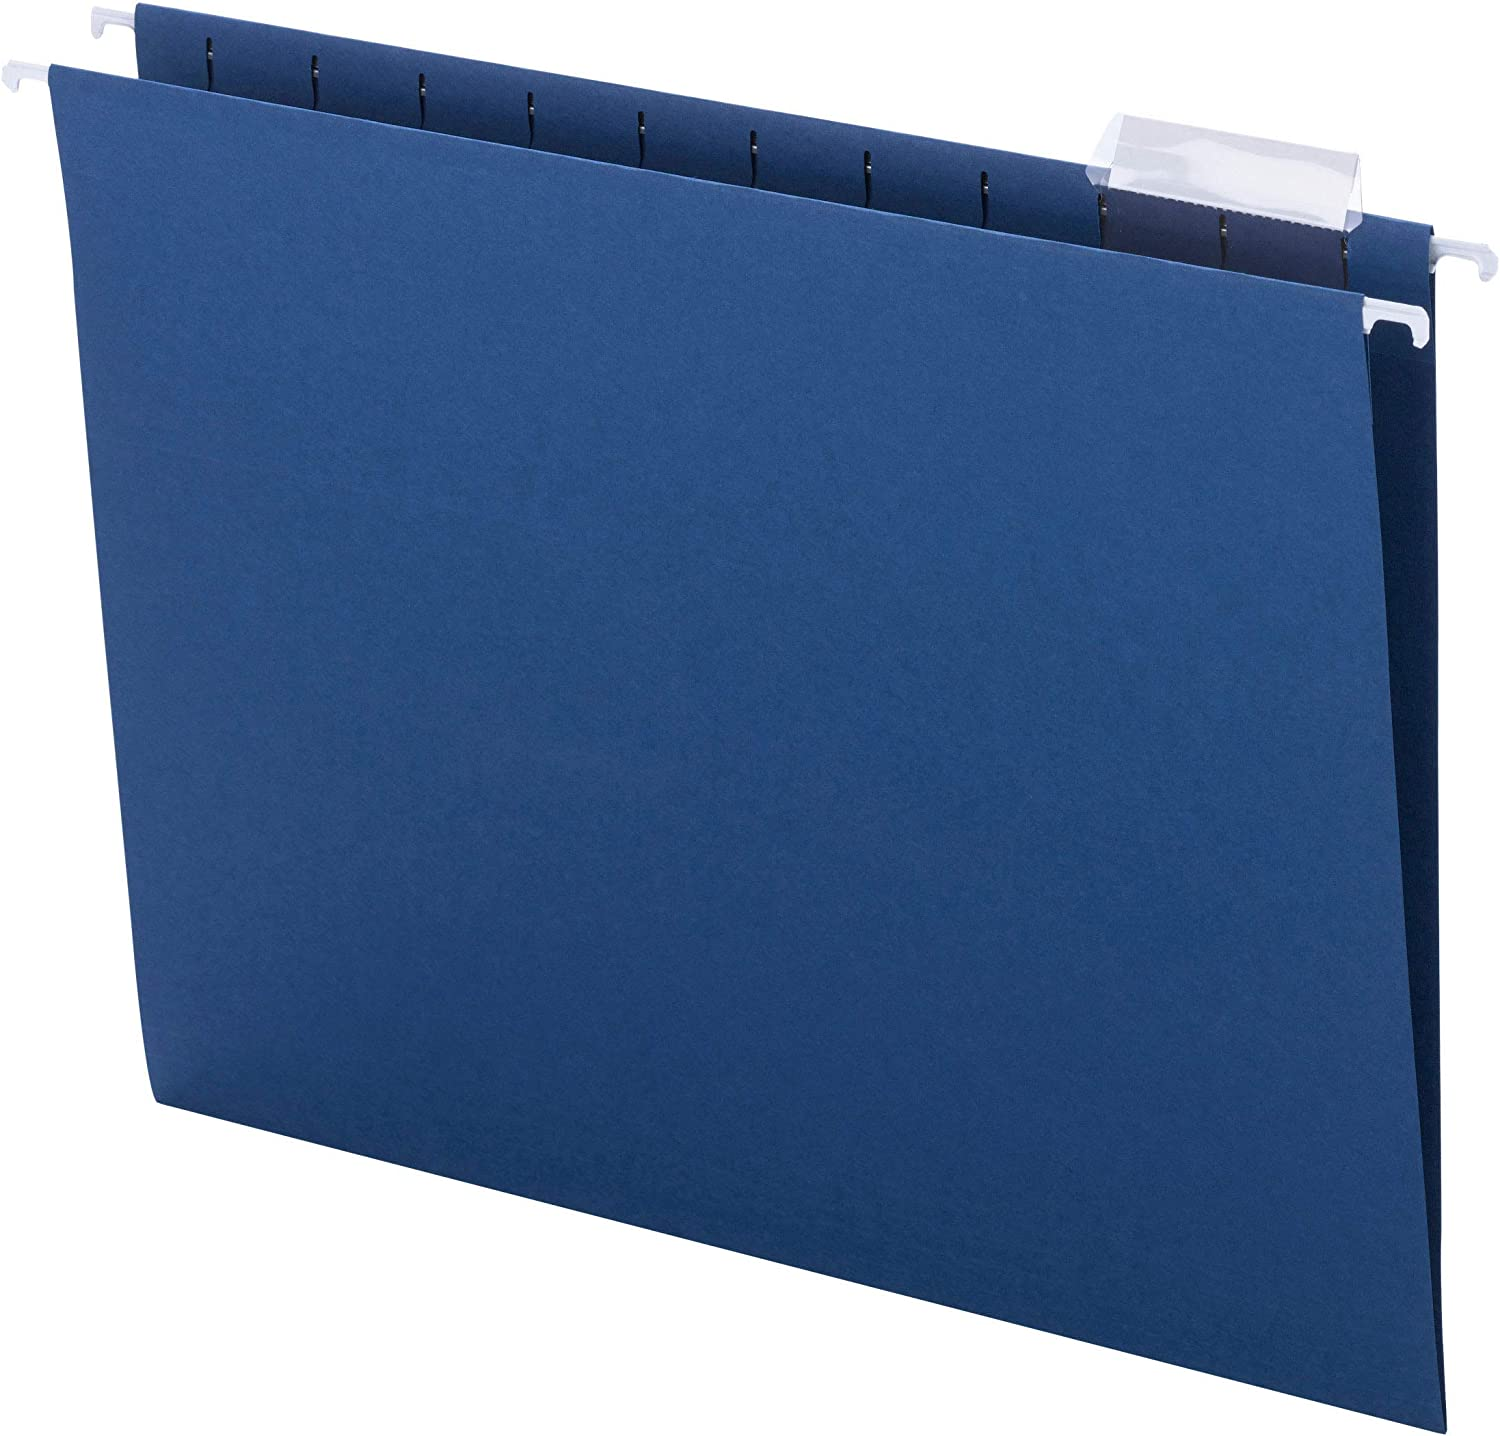 Smead Colored Hanging File Folder with Tab, 1/5-Cut Adjustable Tab, Letter Size, Navy, 25 per Box (64057)